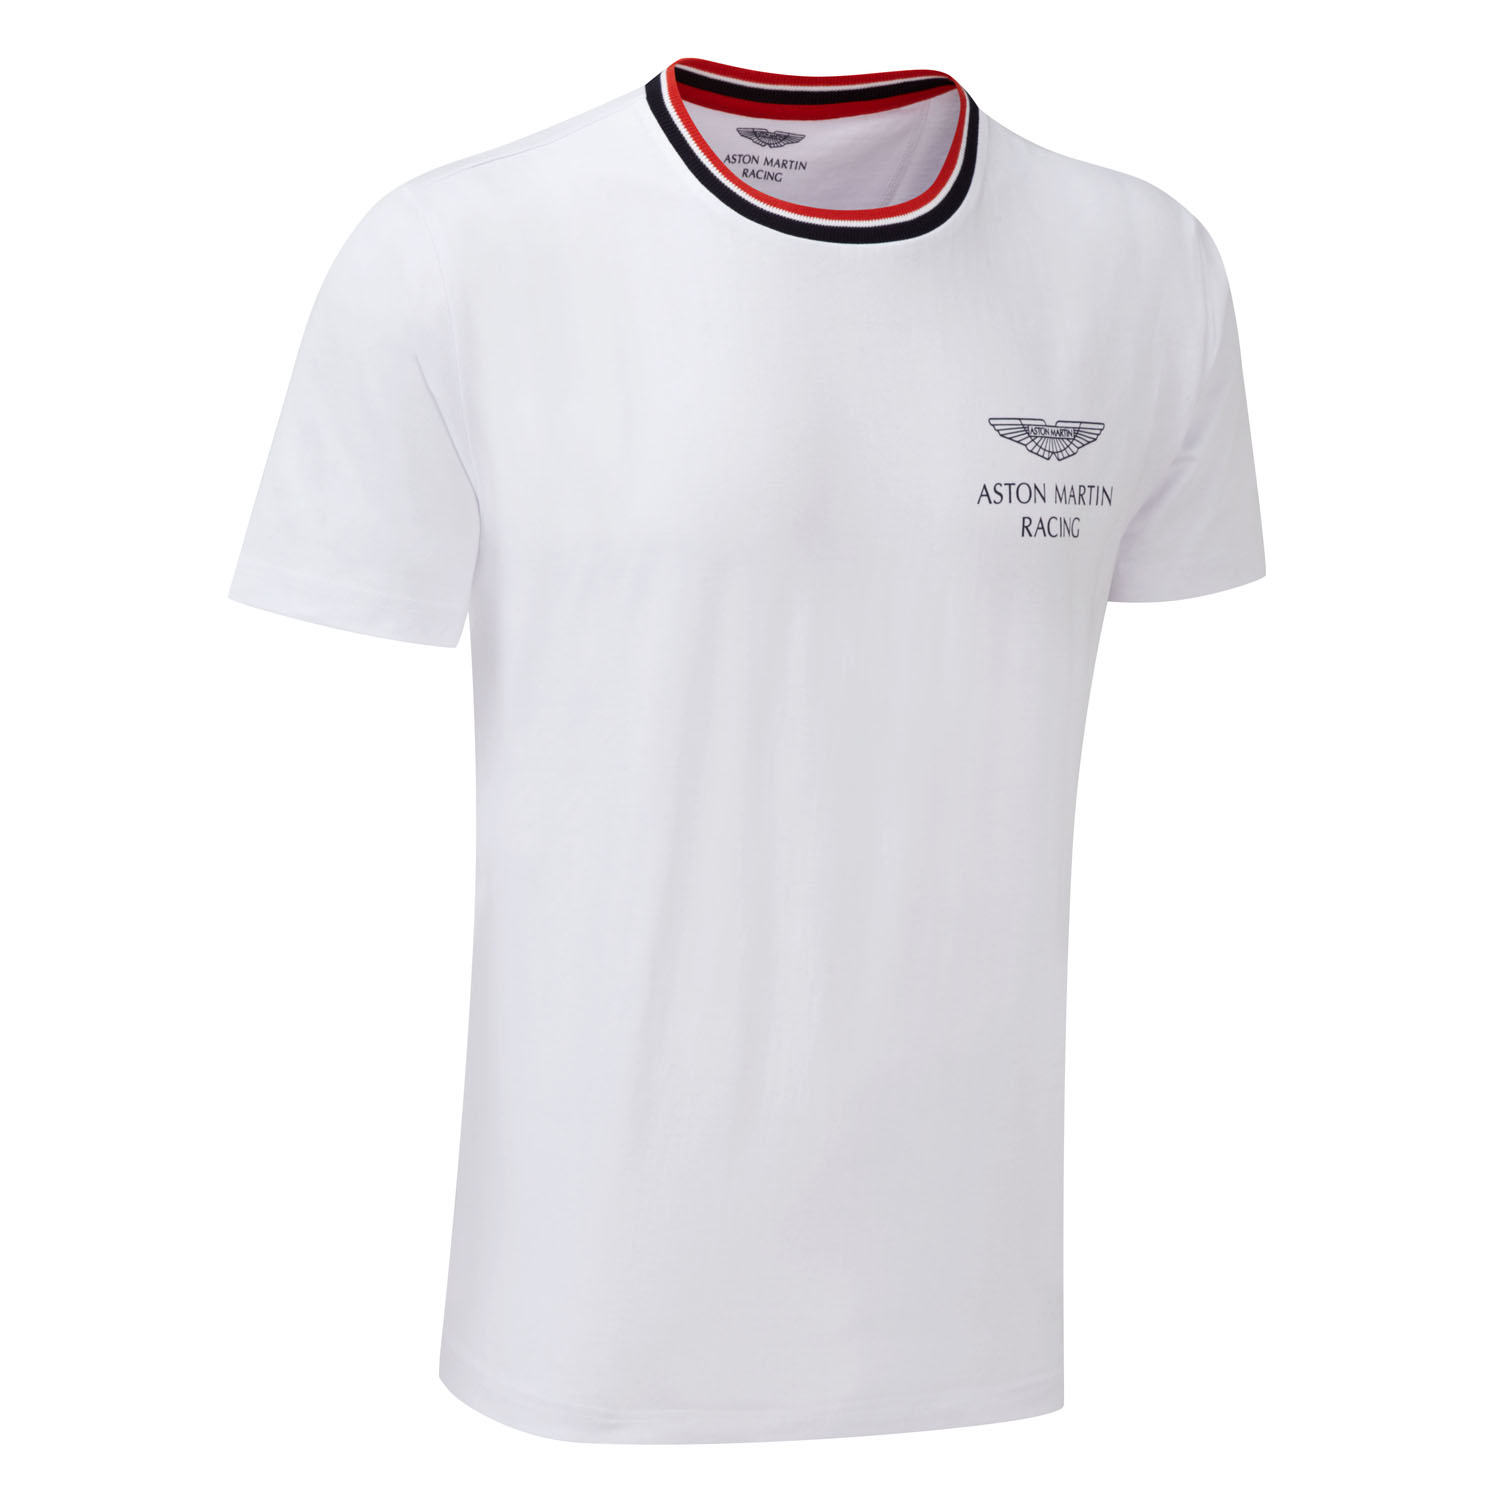 new! 2016 aston martin racing team mens travel t-shirt white sizes s